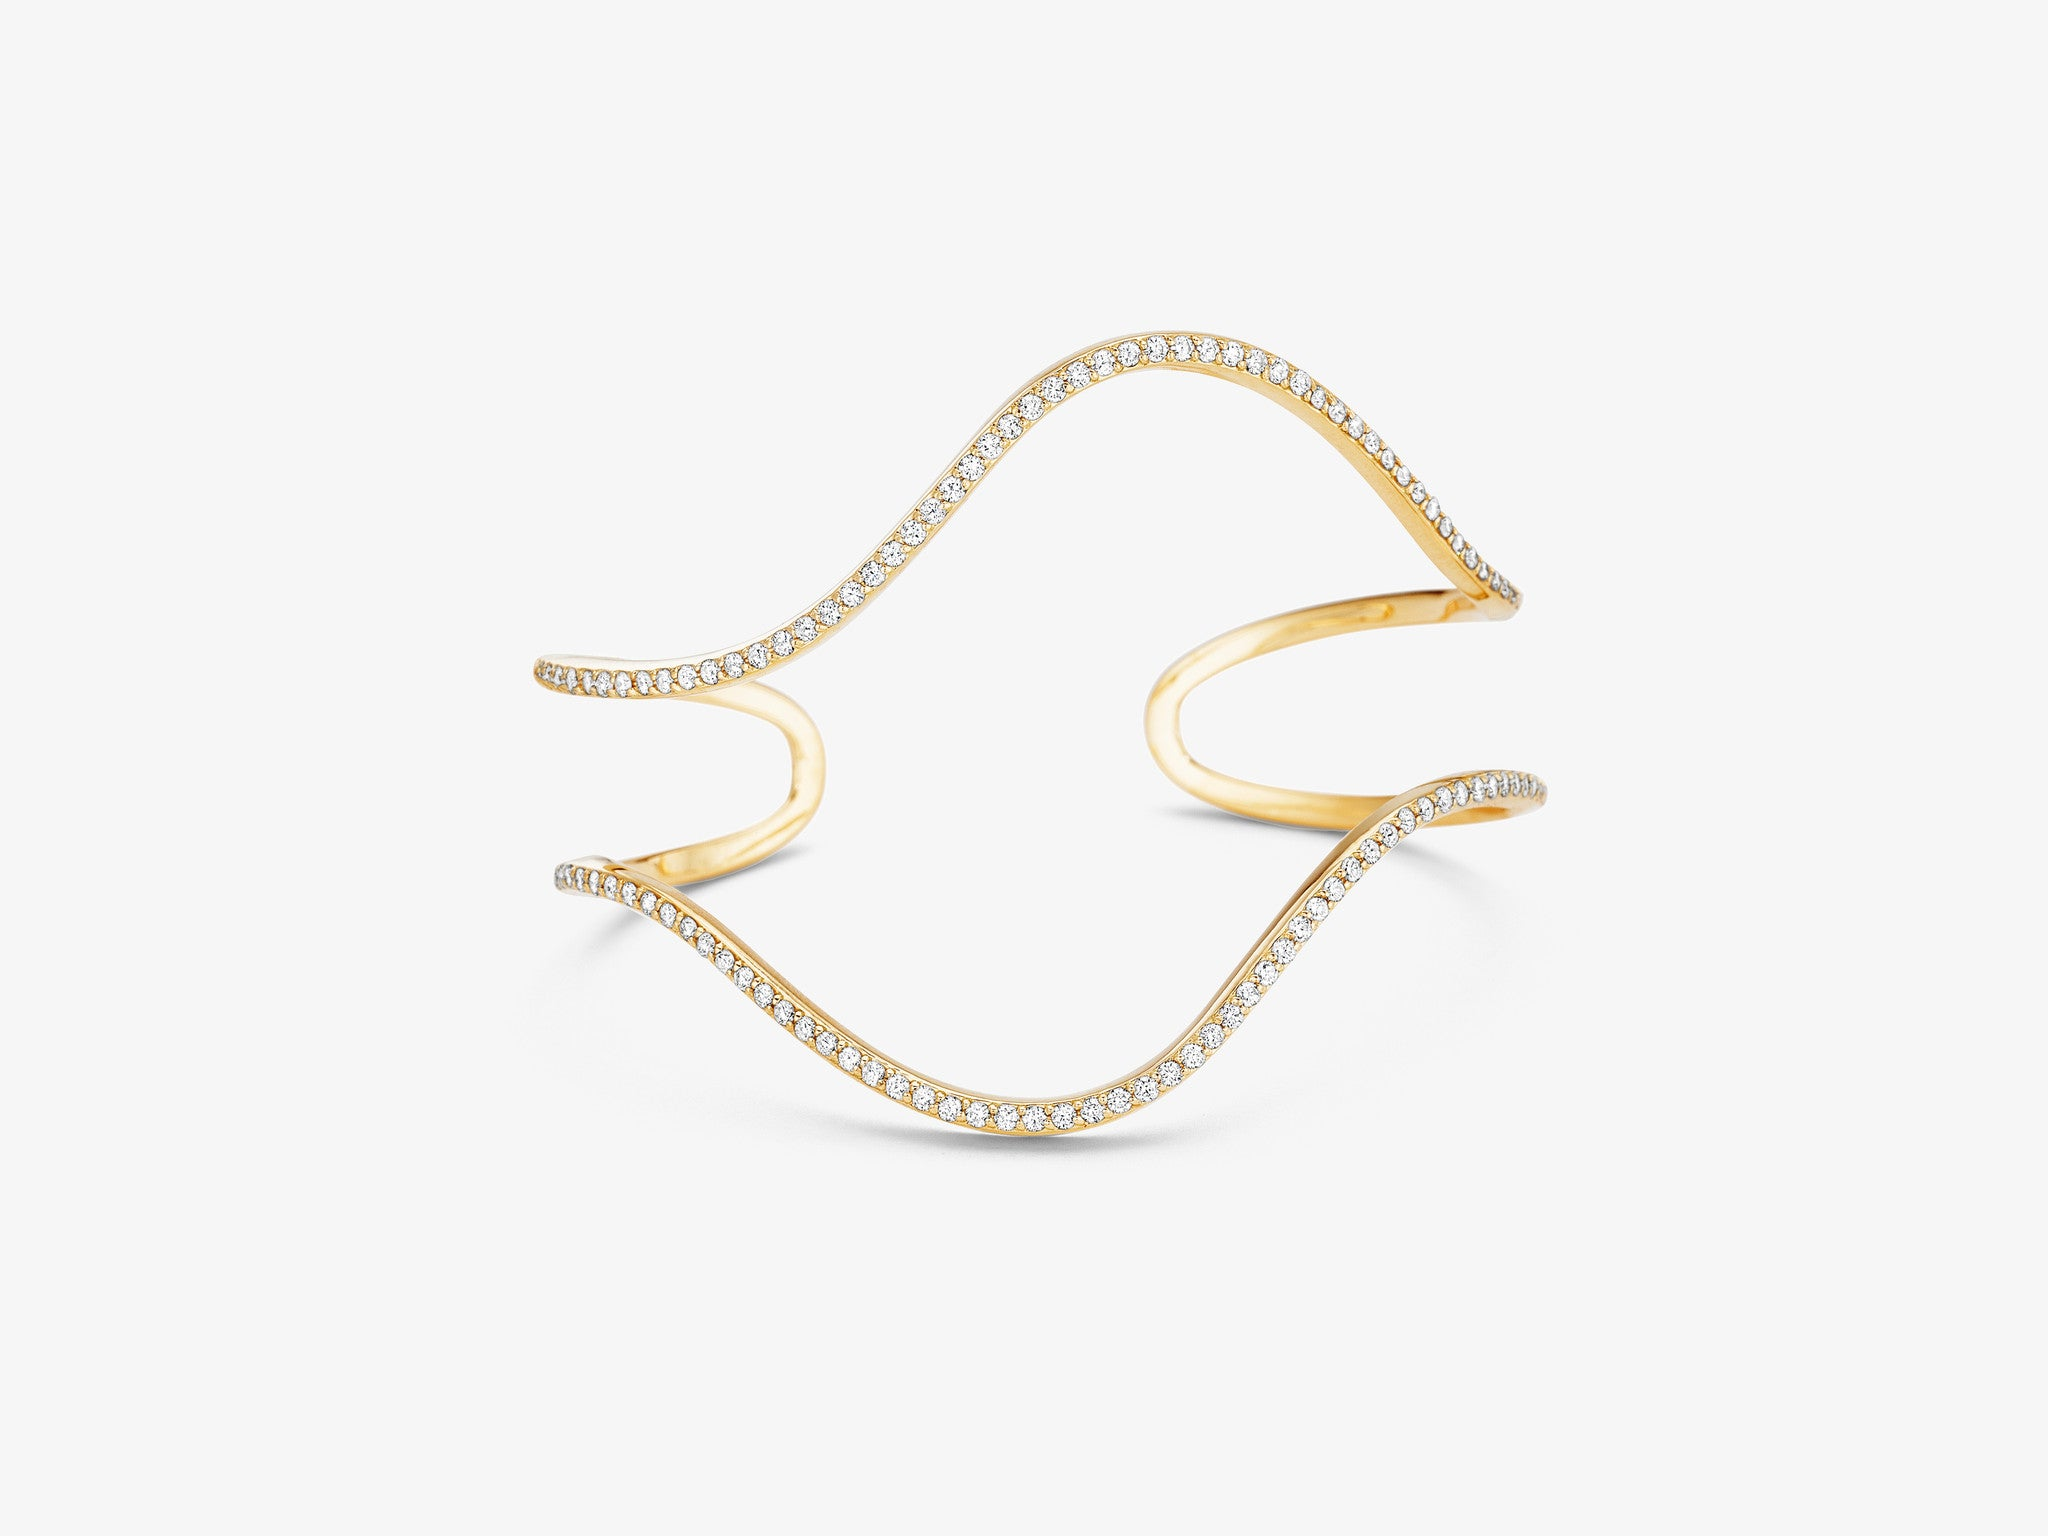 Flou Open Wide Wavy Diamond Gold Cuff Bracelet